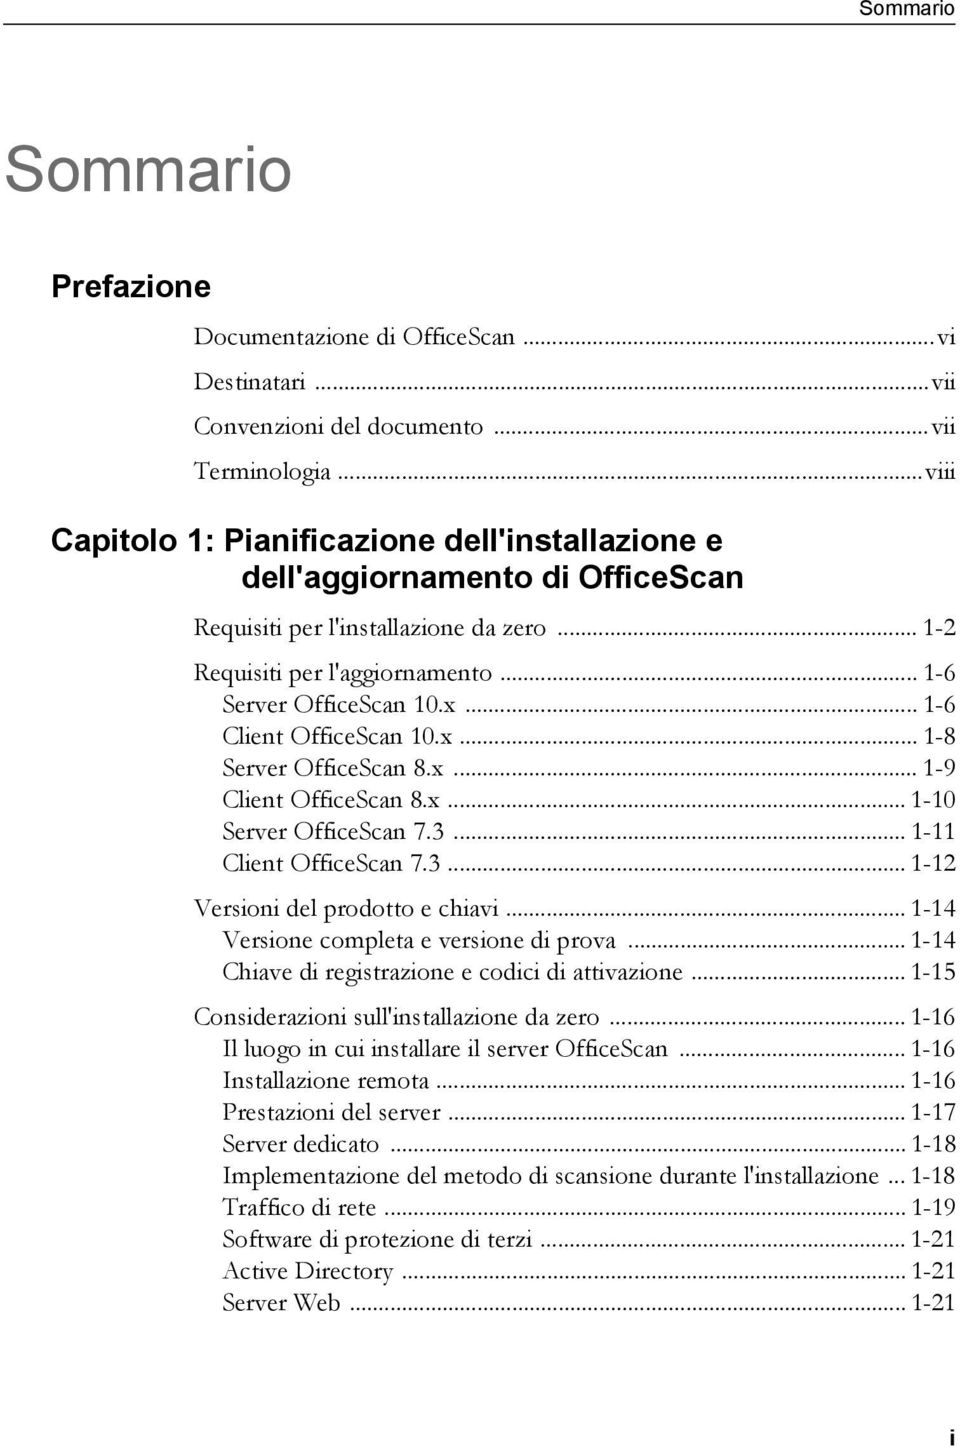 .. 1-6 Client OfficeScan 10.x... 1-8 Server OfficeScan 8.x... 1-9 Client OfficeScan 8.x... 1-10 Server OfficeScan 7.3... 1-11 Client OfficeScan 7.3... 1-12 Versioni del prodotto e chiavi.